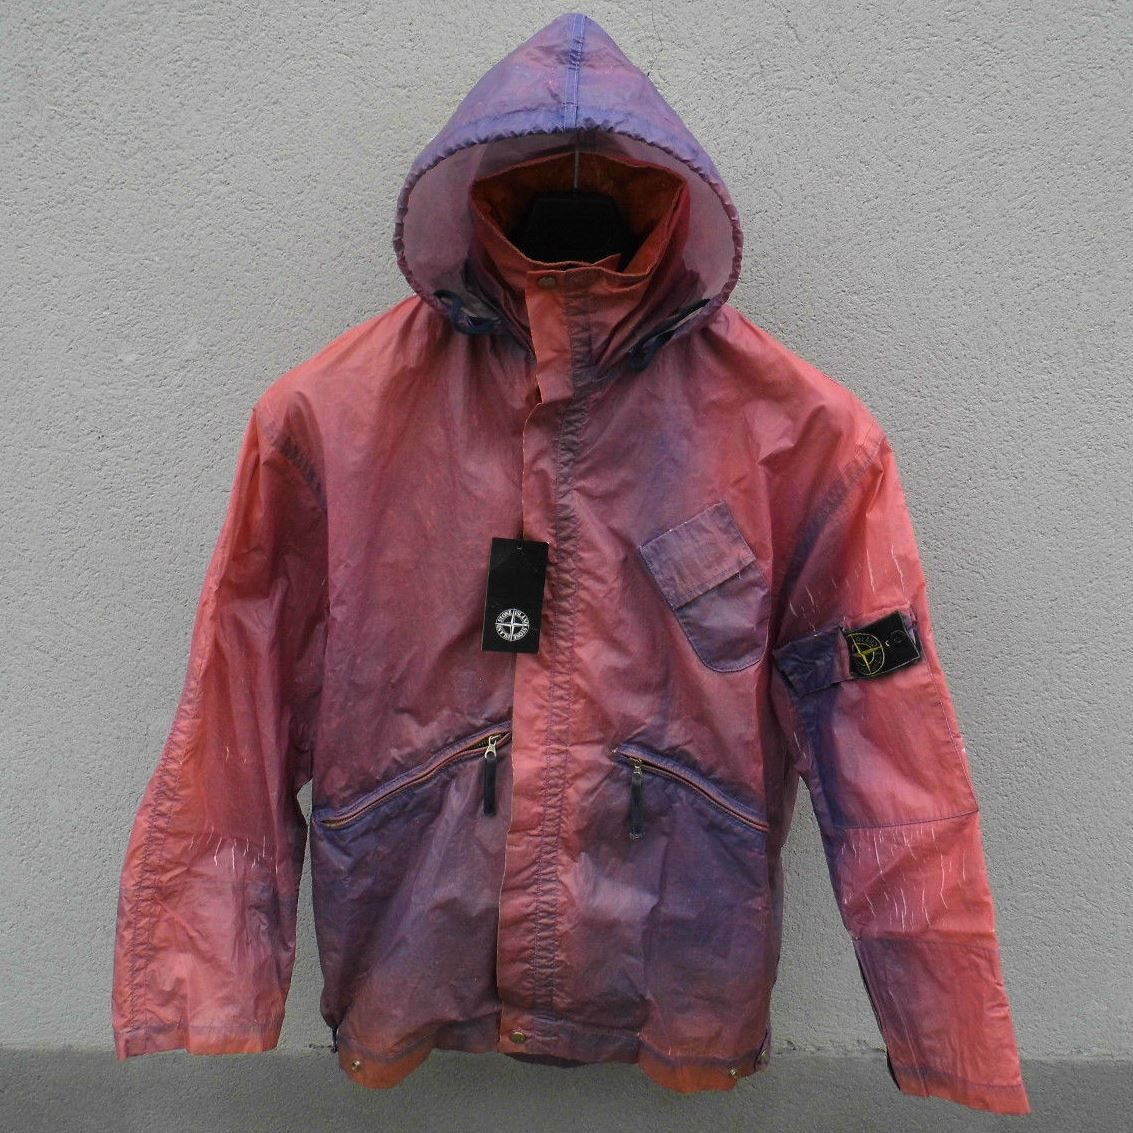 b99d1a83d8c0 Holy Grail of Stone Island - Ice Jacket 1988 and maestro Massimo Osti in  this jacket